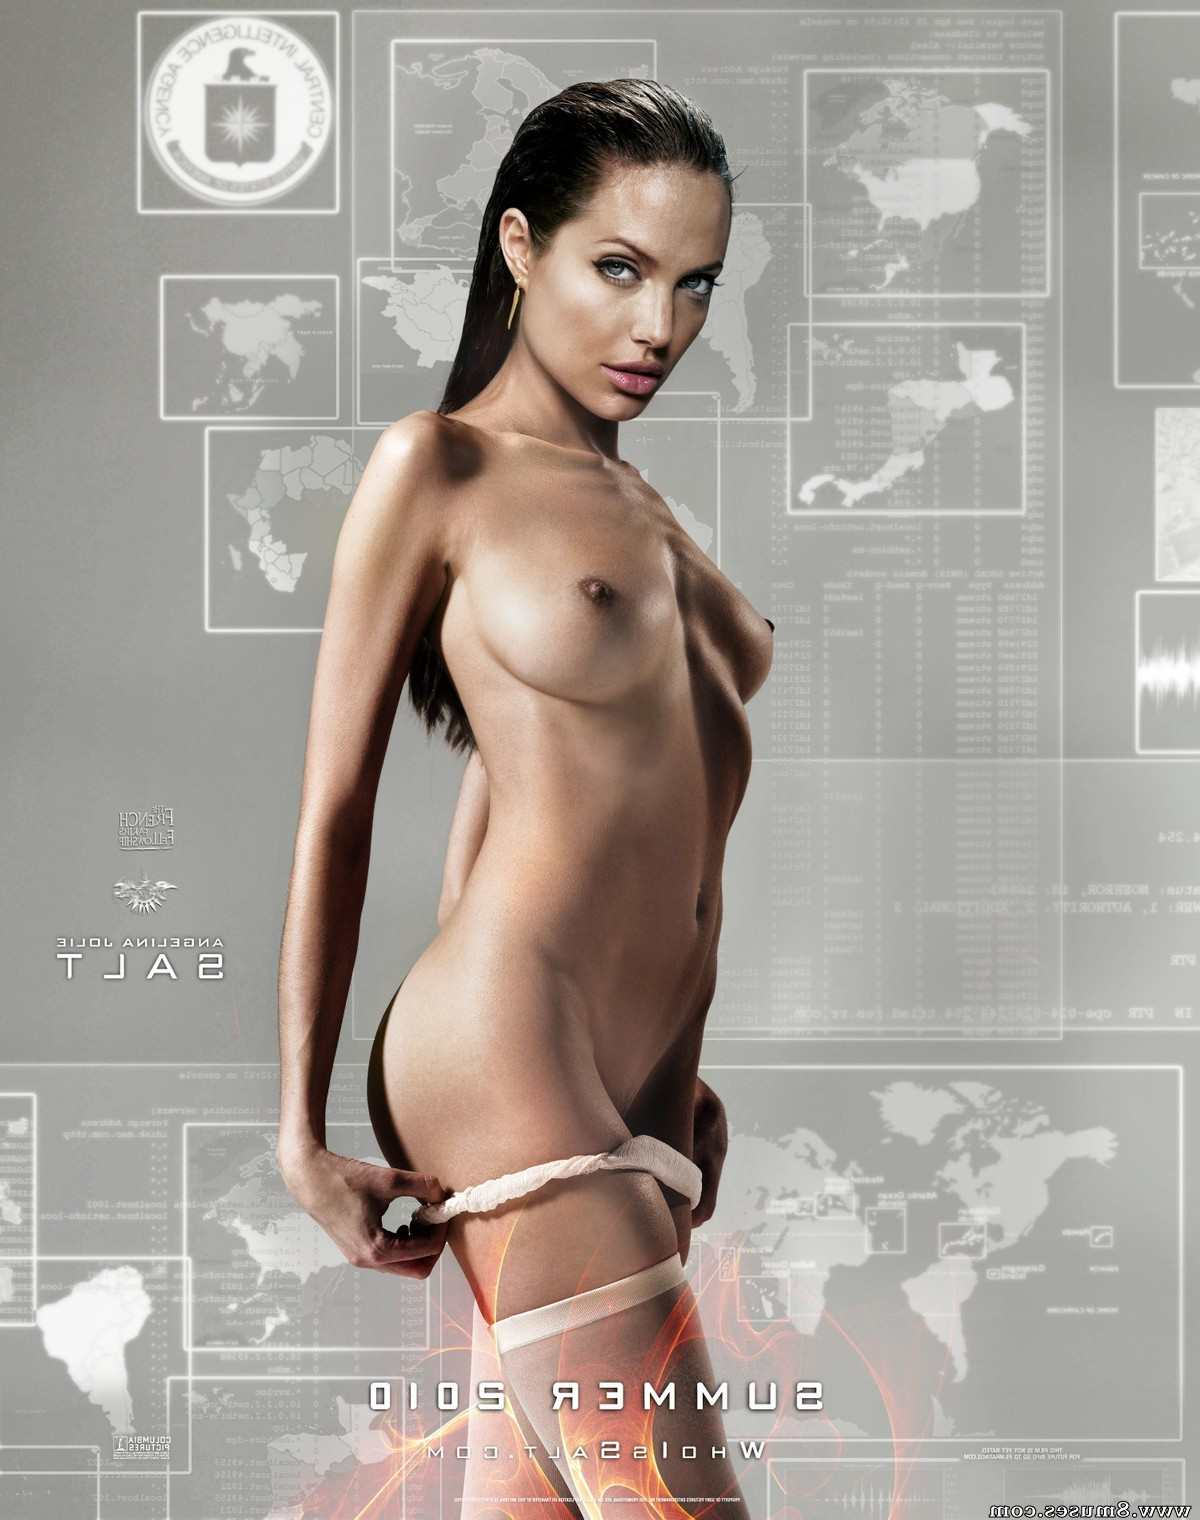 Fake-Celebrities-Sex-Pictures/Angelina-Jolie Angelina_Jolie__8muses_-_Sex_and_Porn_Comics_511.jpg